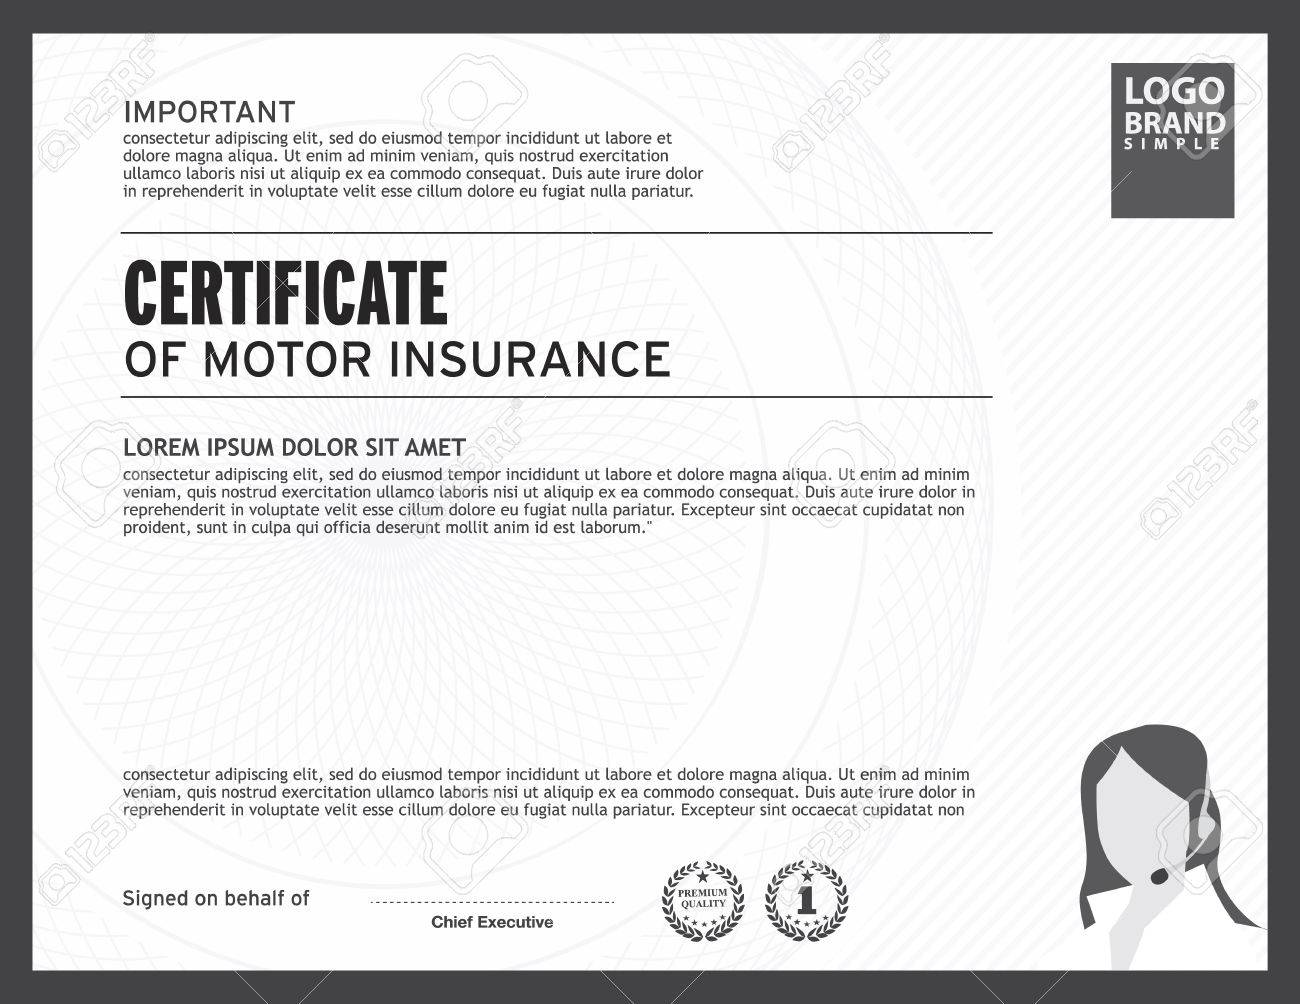 Certificate Of Motor Insurance Template Royalty Free Cliparts Vectors And Stock Illustration Image 41637268